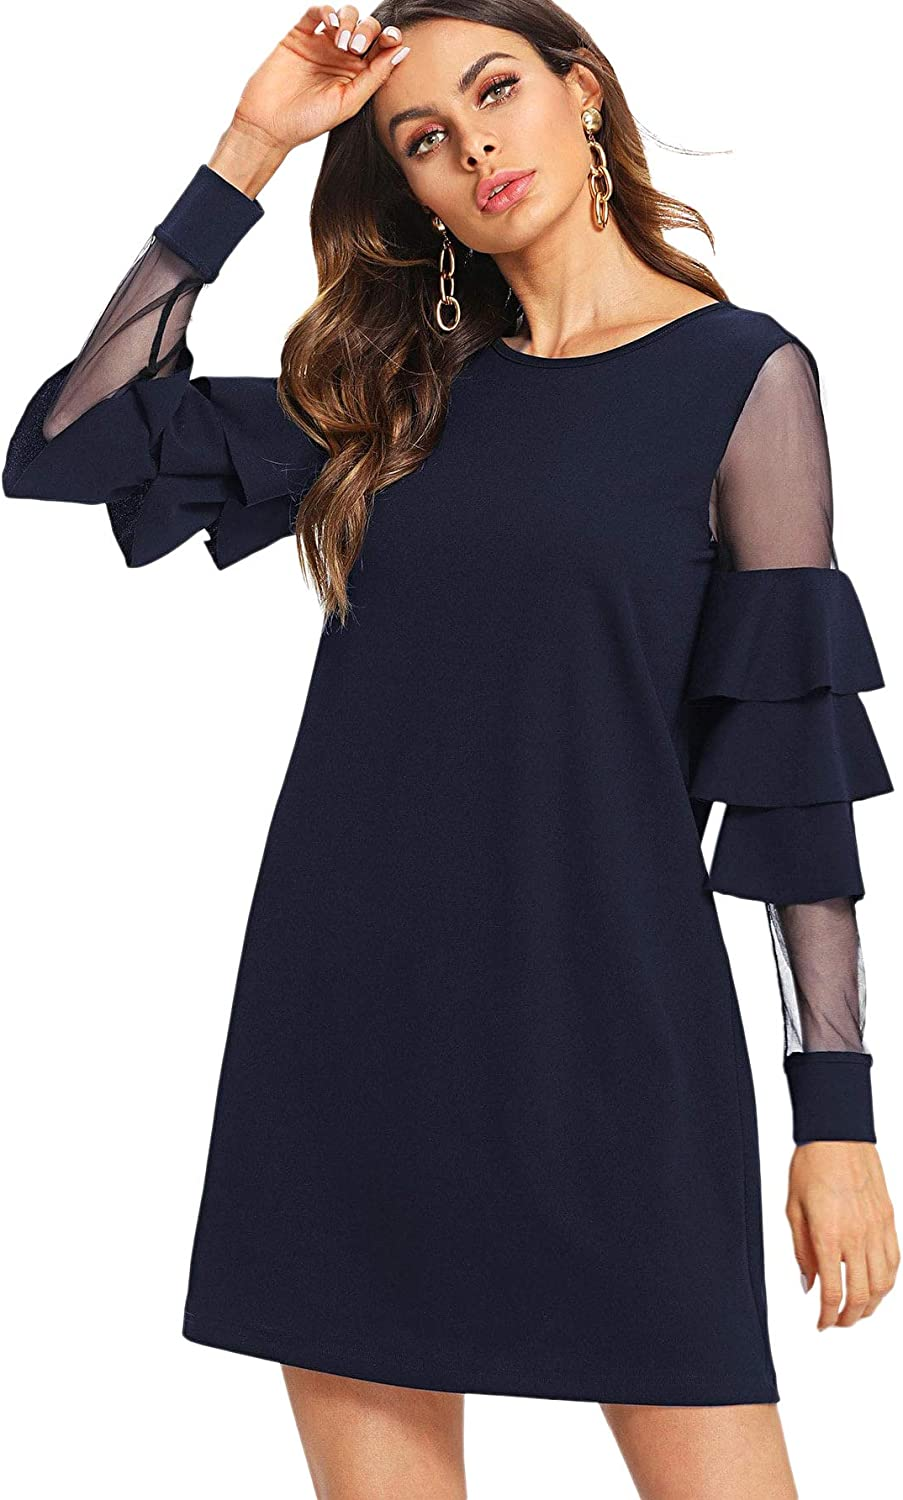 Milumia Women Mesh Long Sleeves Midi Little Black Dress Fit and Flare Scoop Neck Church Dresses